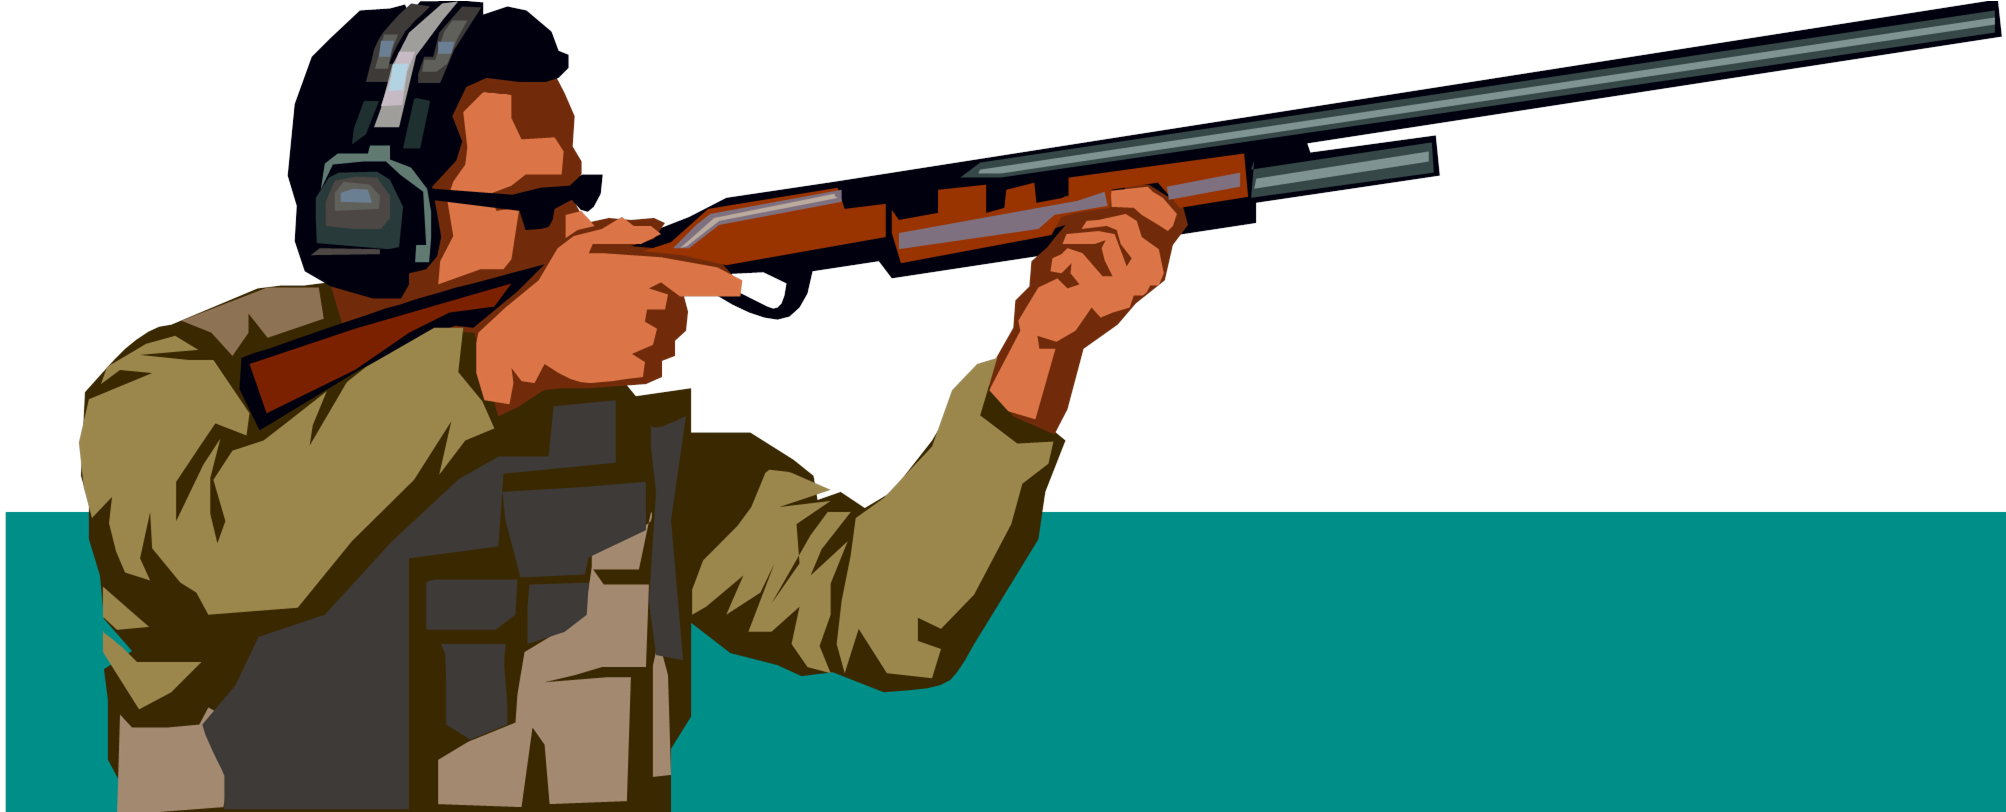 Shooting clipart real gun. Free sporting clays cliparts